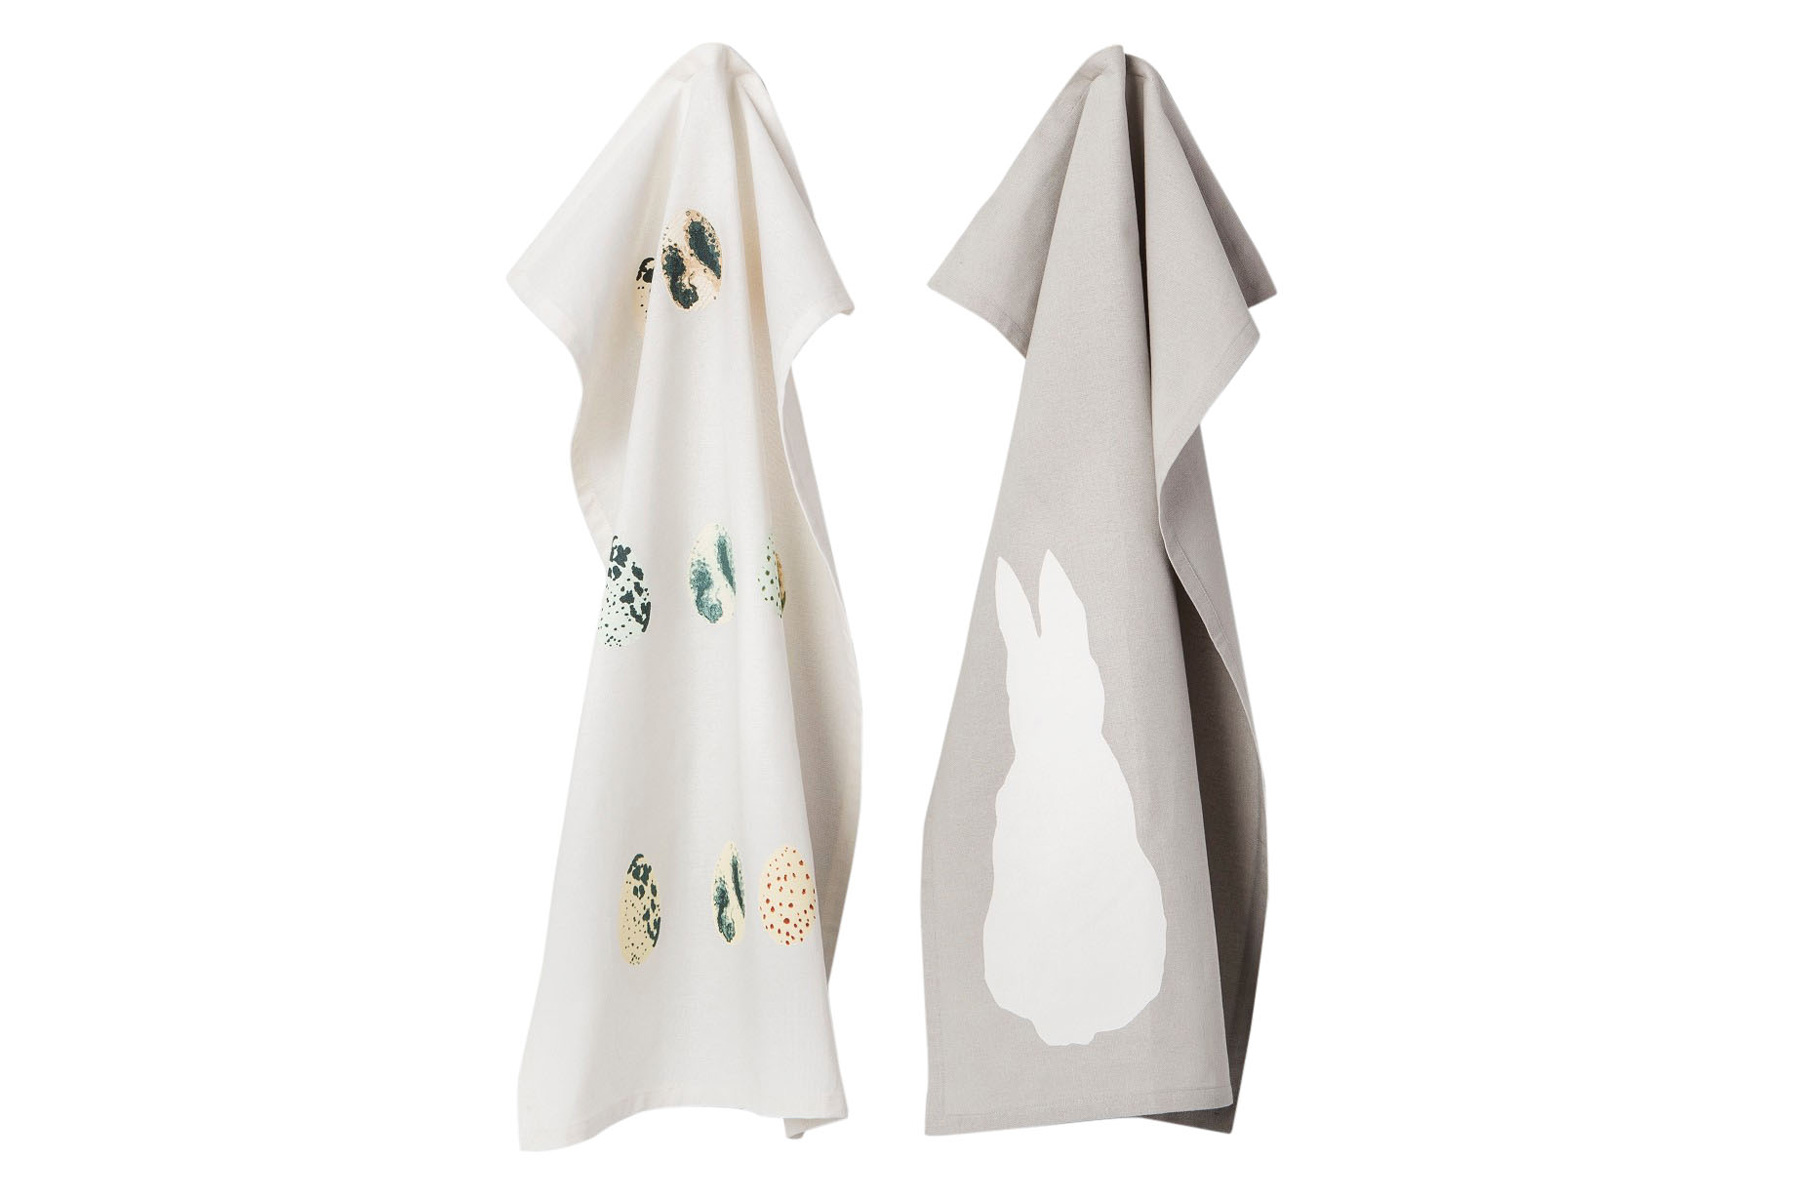 Easter Basket Ideas for Adults, kitchen towels